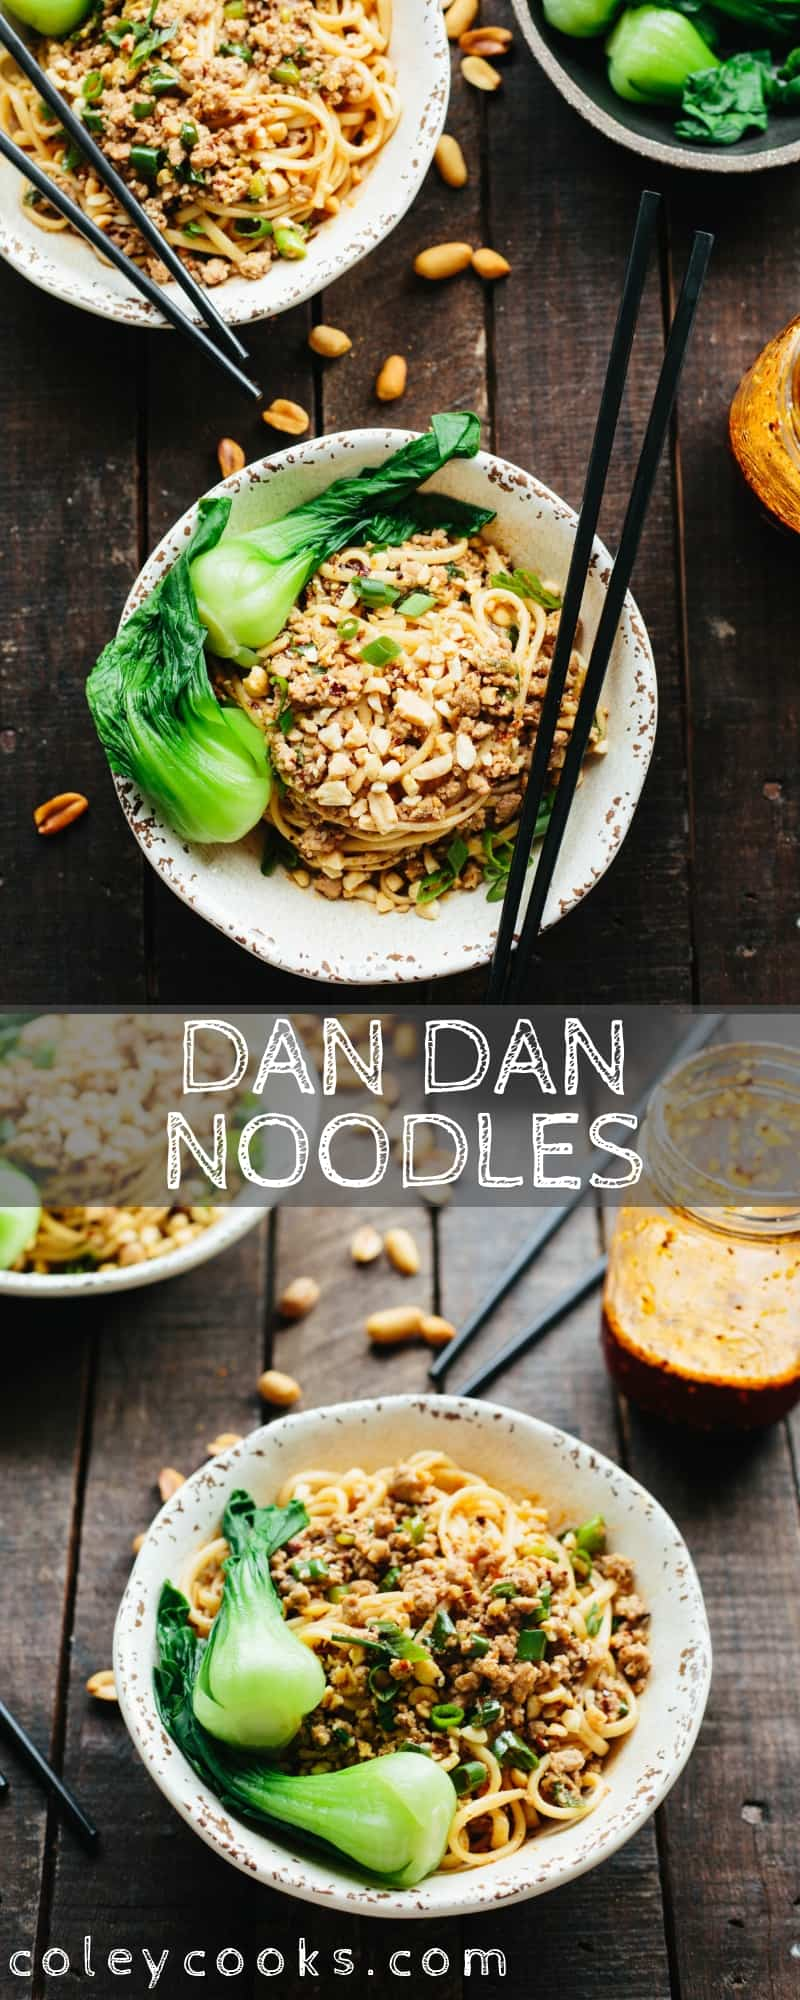 Dan Dan Noodles are a classic Sichuan street food made with ground pork and spicy chili oil. These noodles have the perfect balance of flavors and textures! #dandan #noodles #Chinese #sichuan #easy #recipe #spicy #pork   coleycooks.com